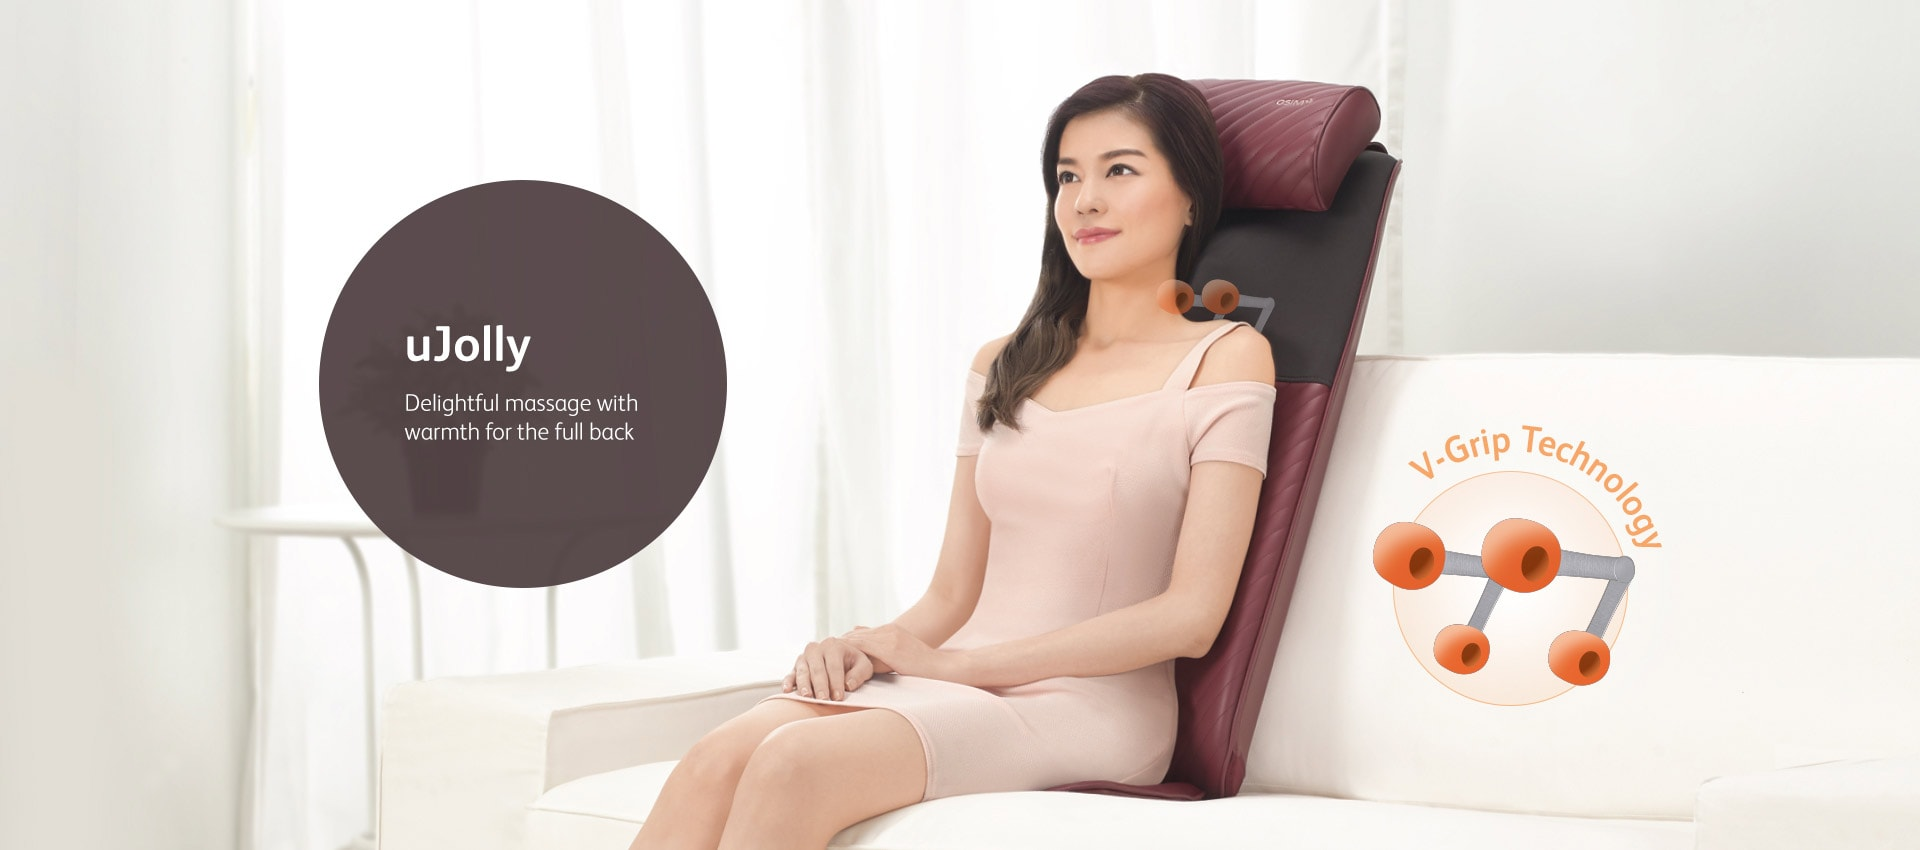 Ujolly Full Back Massager With Warmth